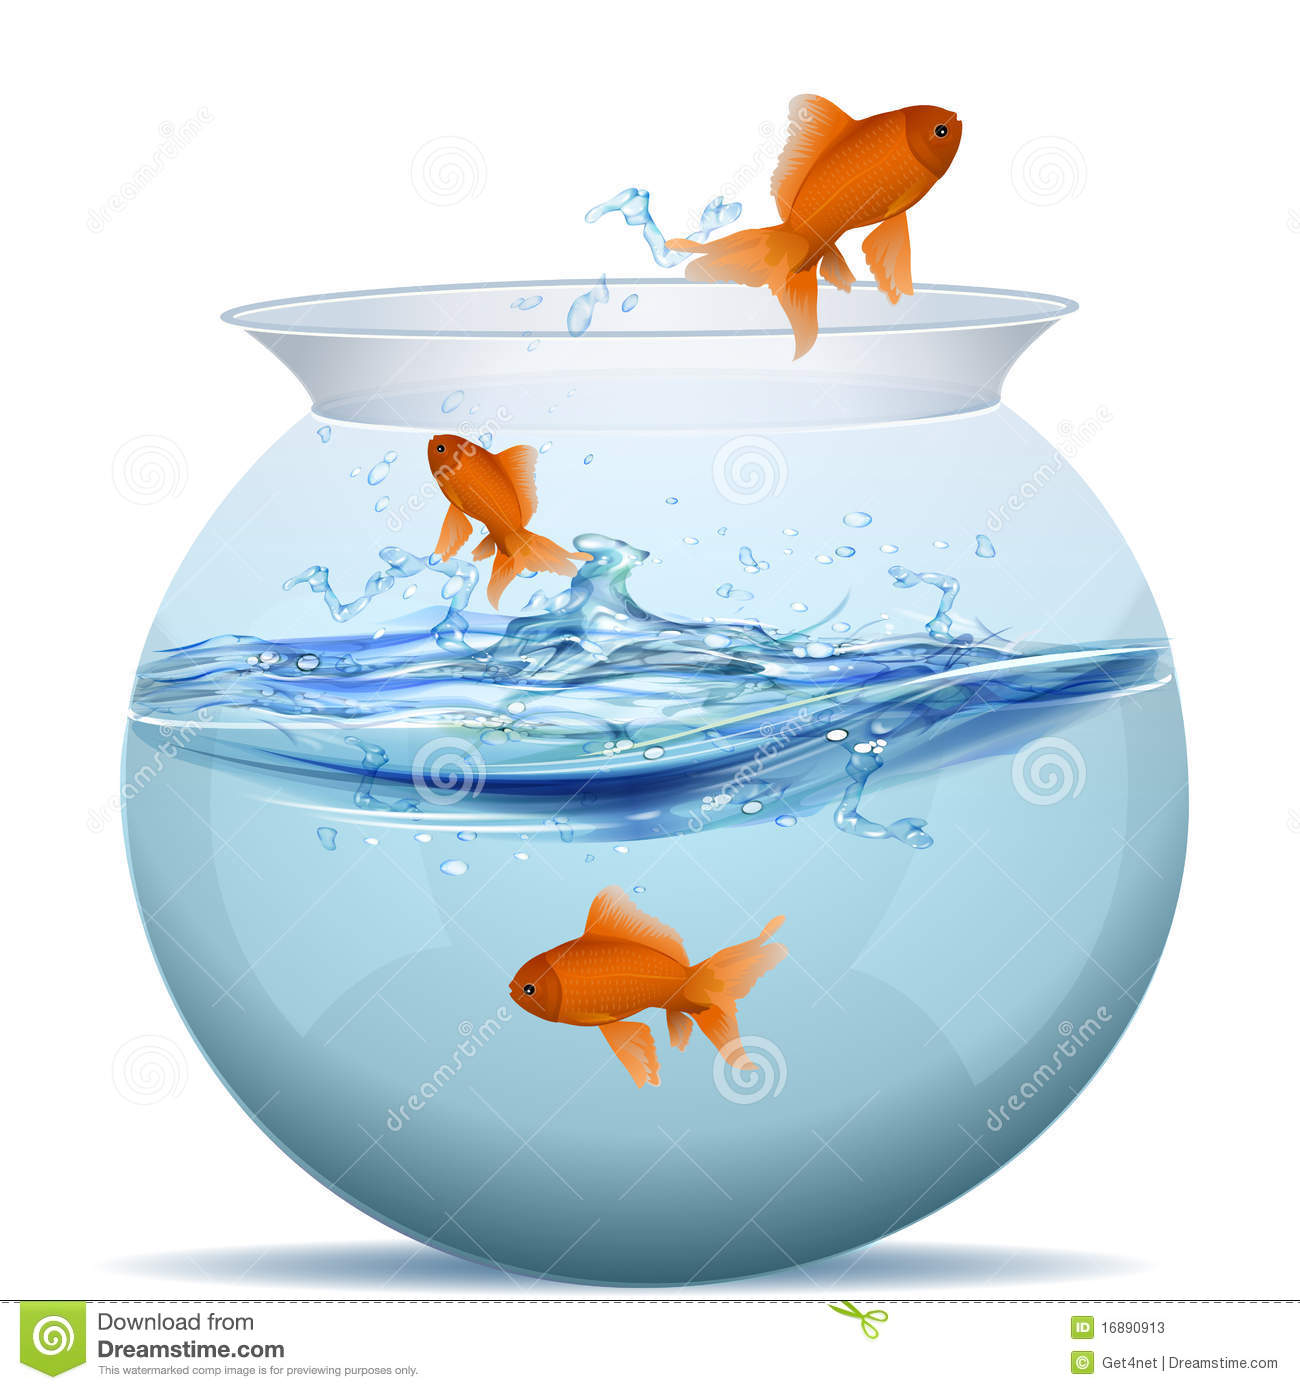 Fish tank stock photos image 16890913 for Stock tanks for fish